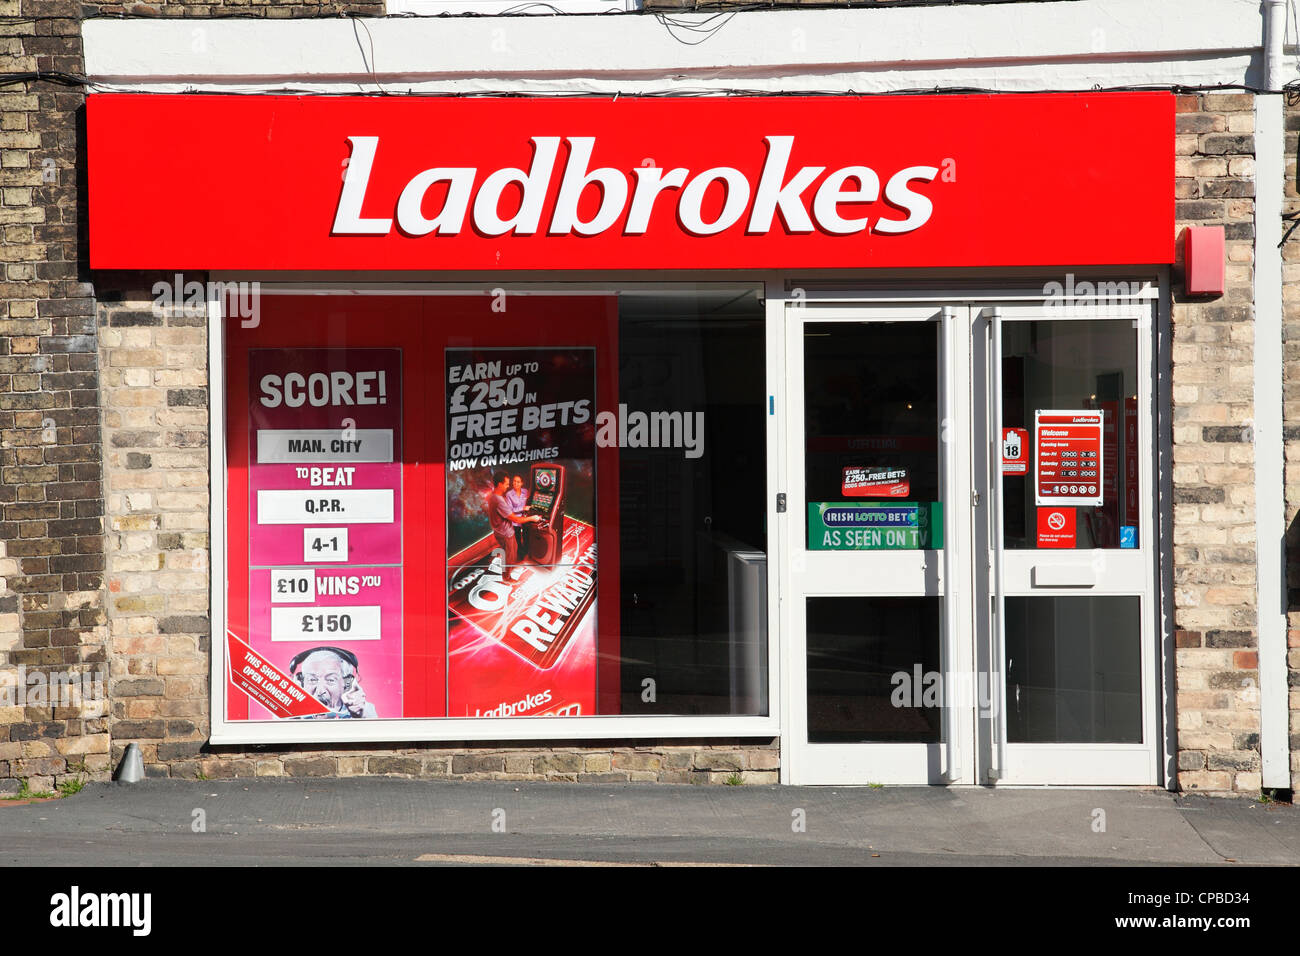 Ladbrokes fixed odds financial betting sites top football betting sites uk top